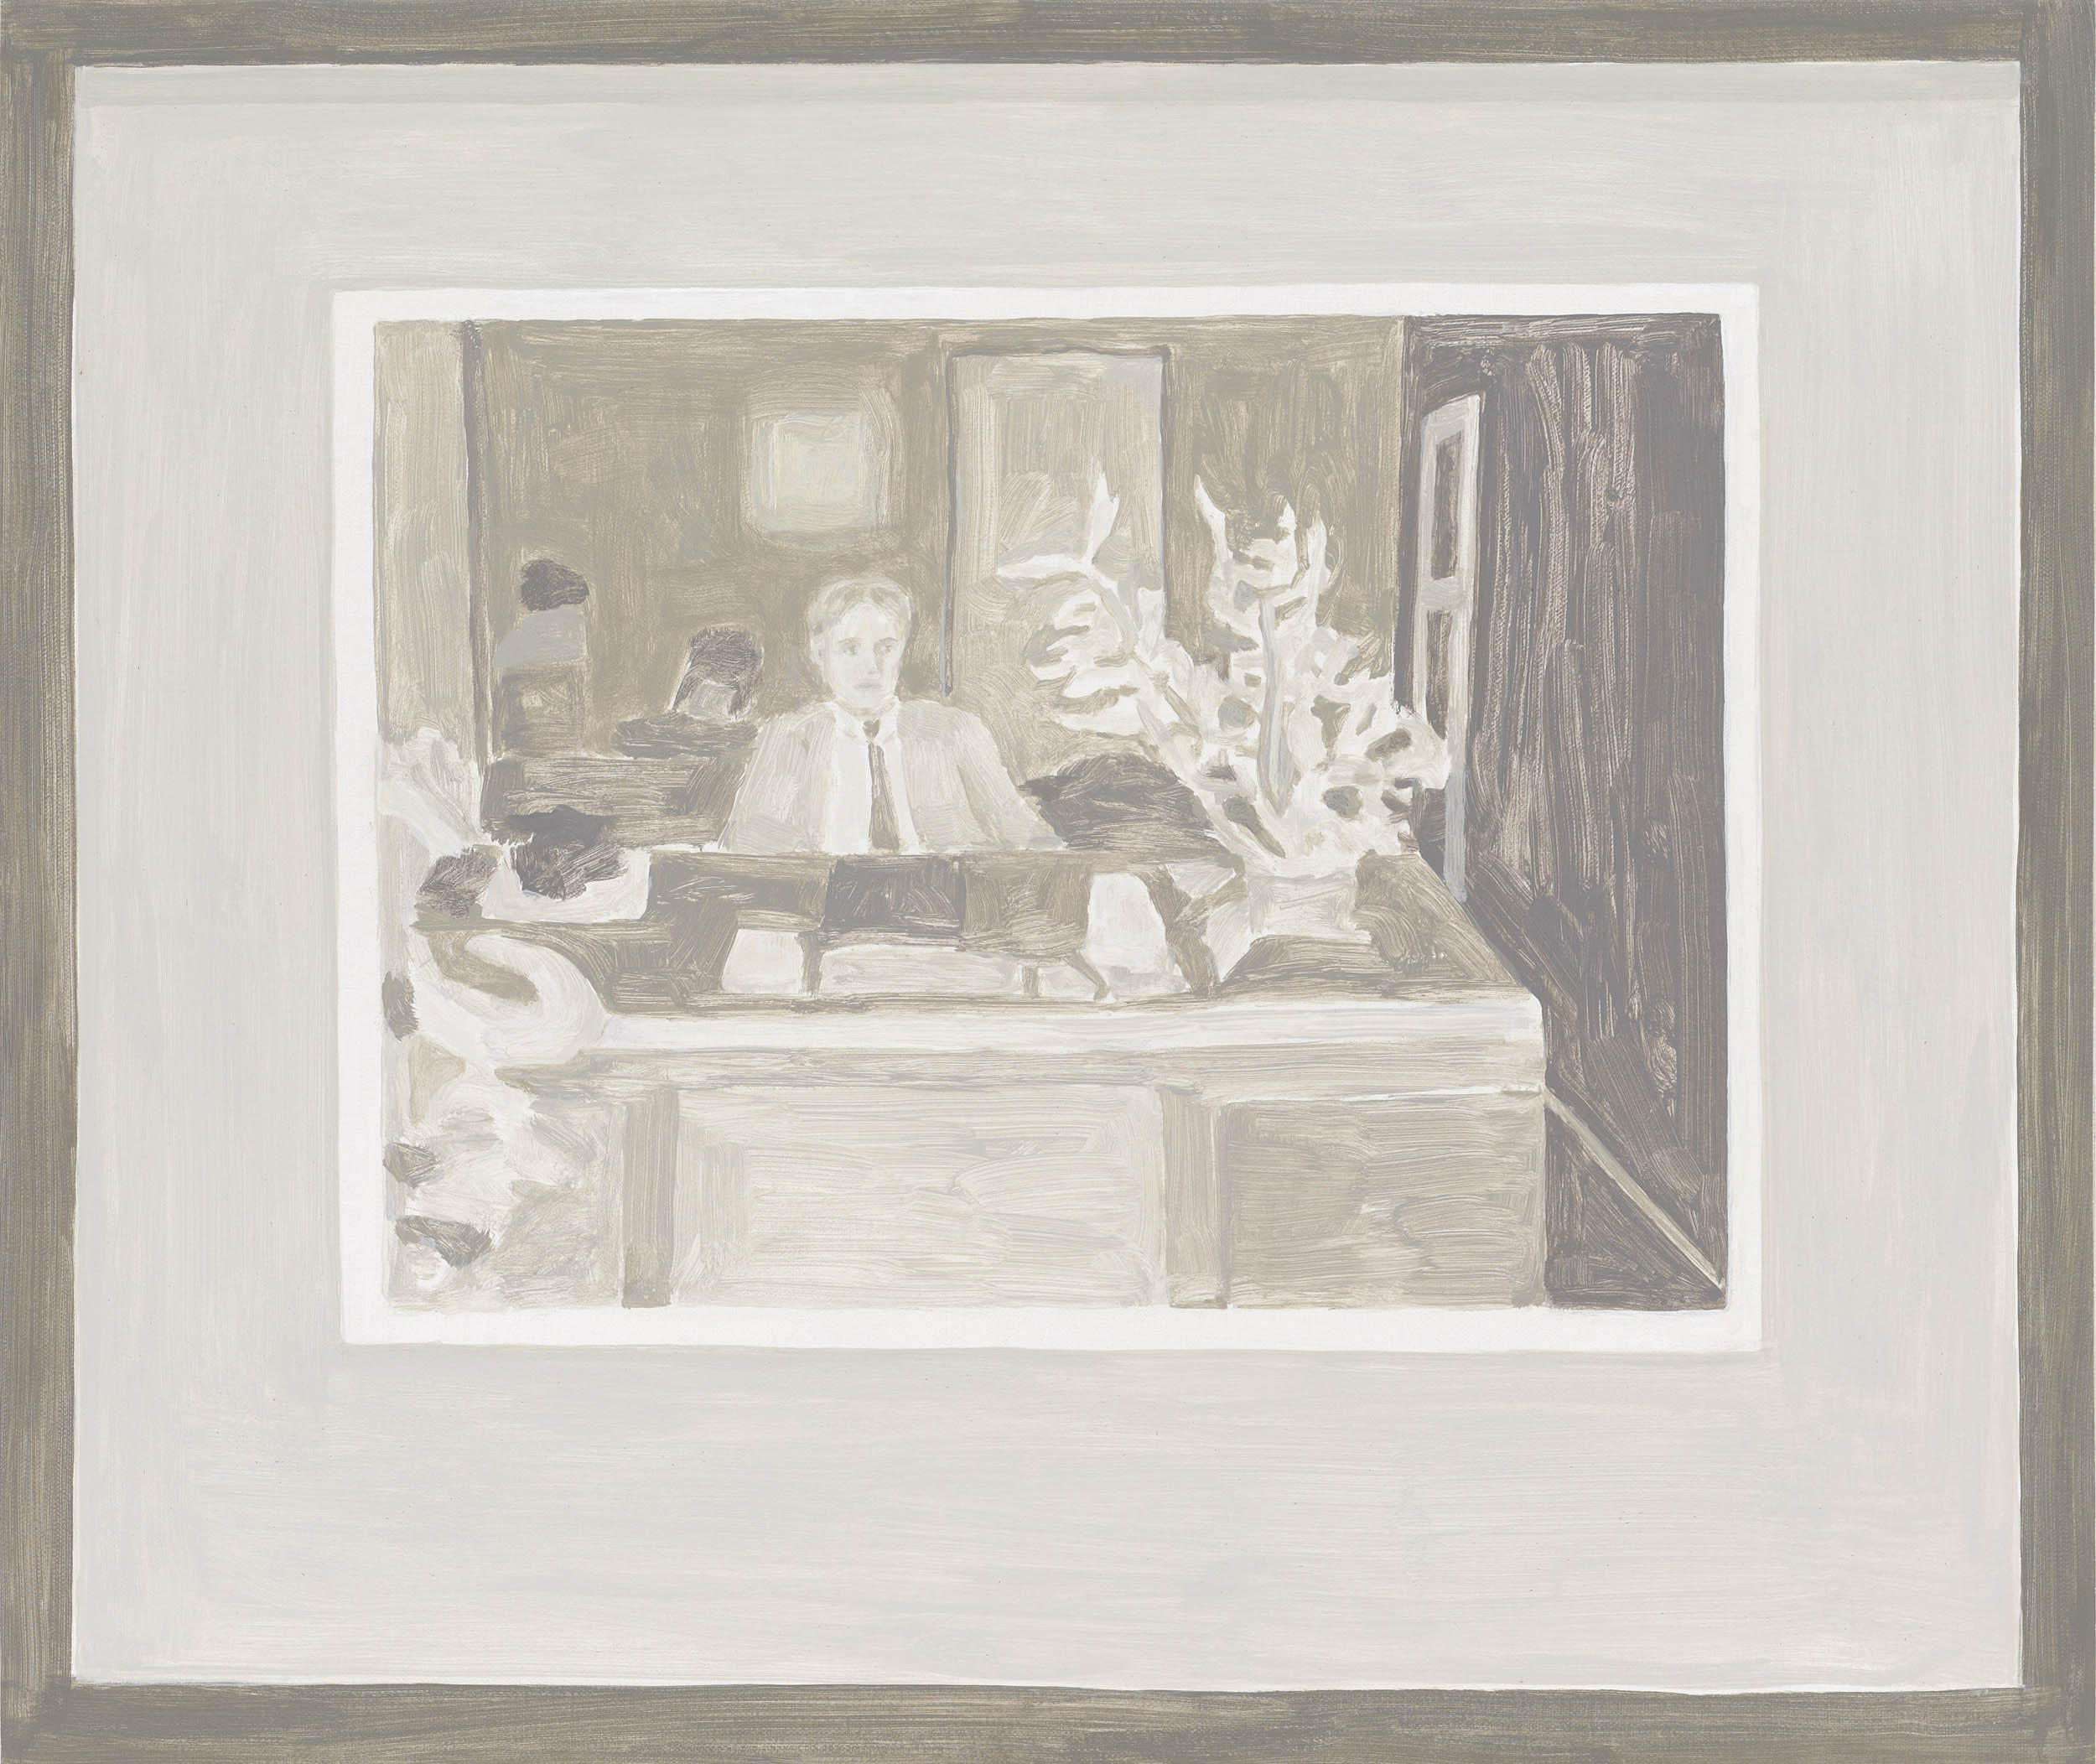 Framed Photo: Man at Desk, acrylic on canvas over board, 18 1/2 x 22 inches, 2011.   X2016.10,  Permanent.Collection, 2016.  Paintings of Paintings , Talley Dunn Gallery, 2012.